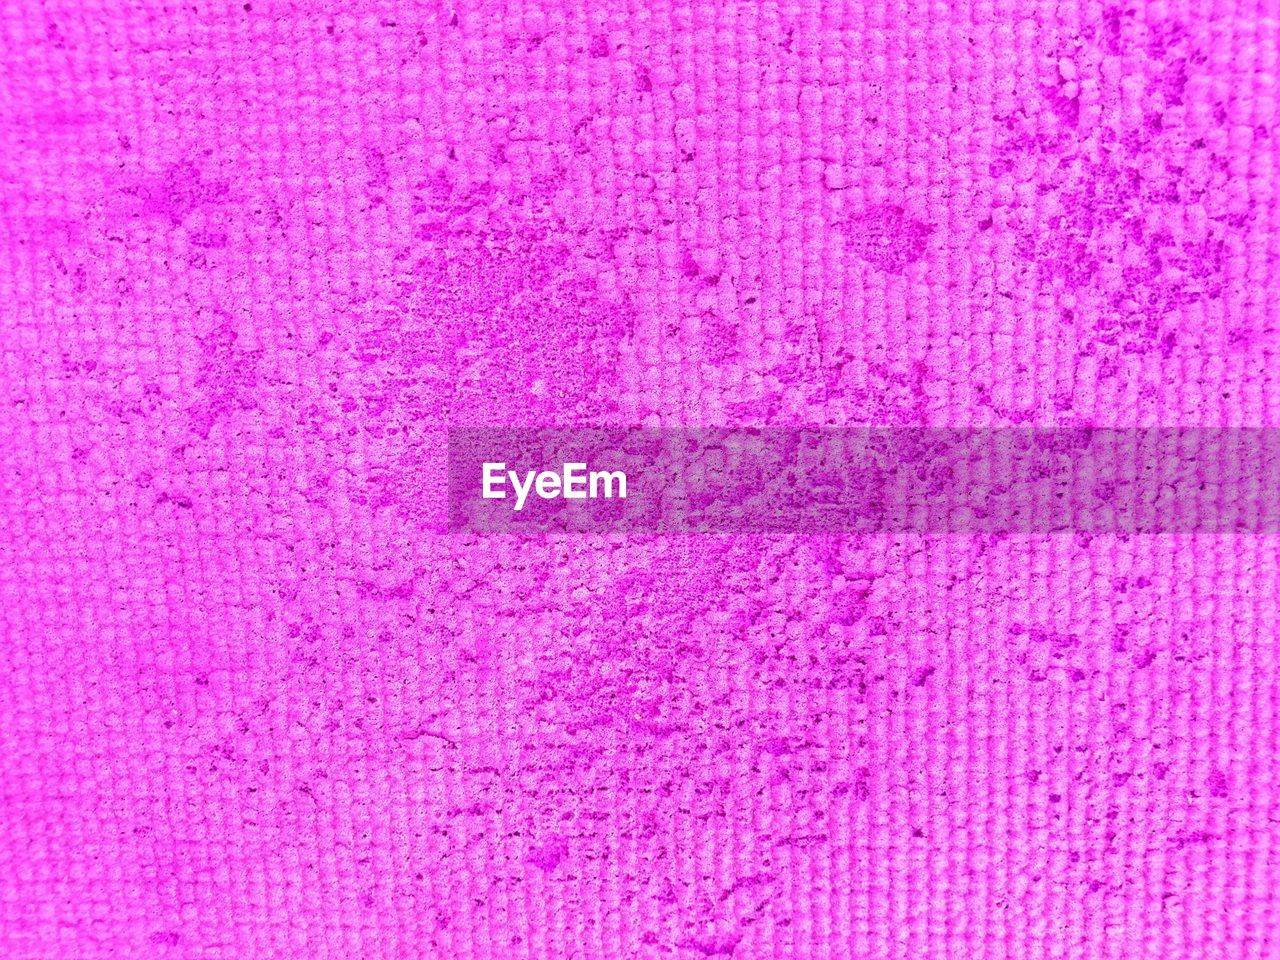 pink color, backgrounds, textured, full frame, pattern, no people, magenta, close-up, abstract, beauty, pastel colored, textile, ink, indoors, softness, purple, spotted, fashion, retro styled, brightly lit, textured effect, garment